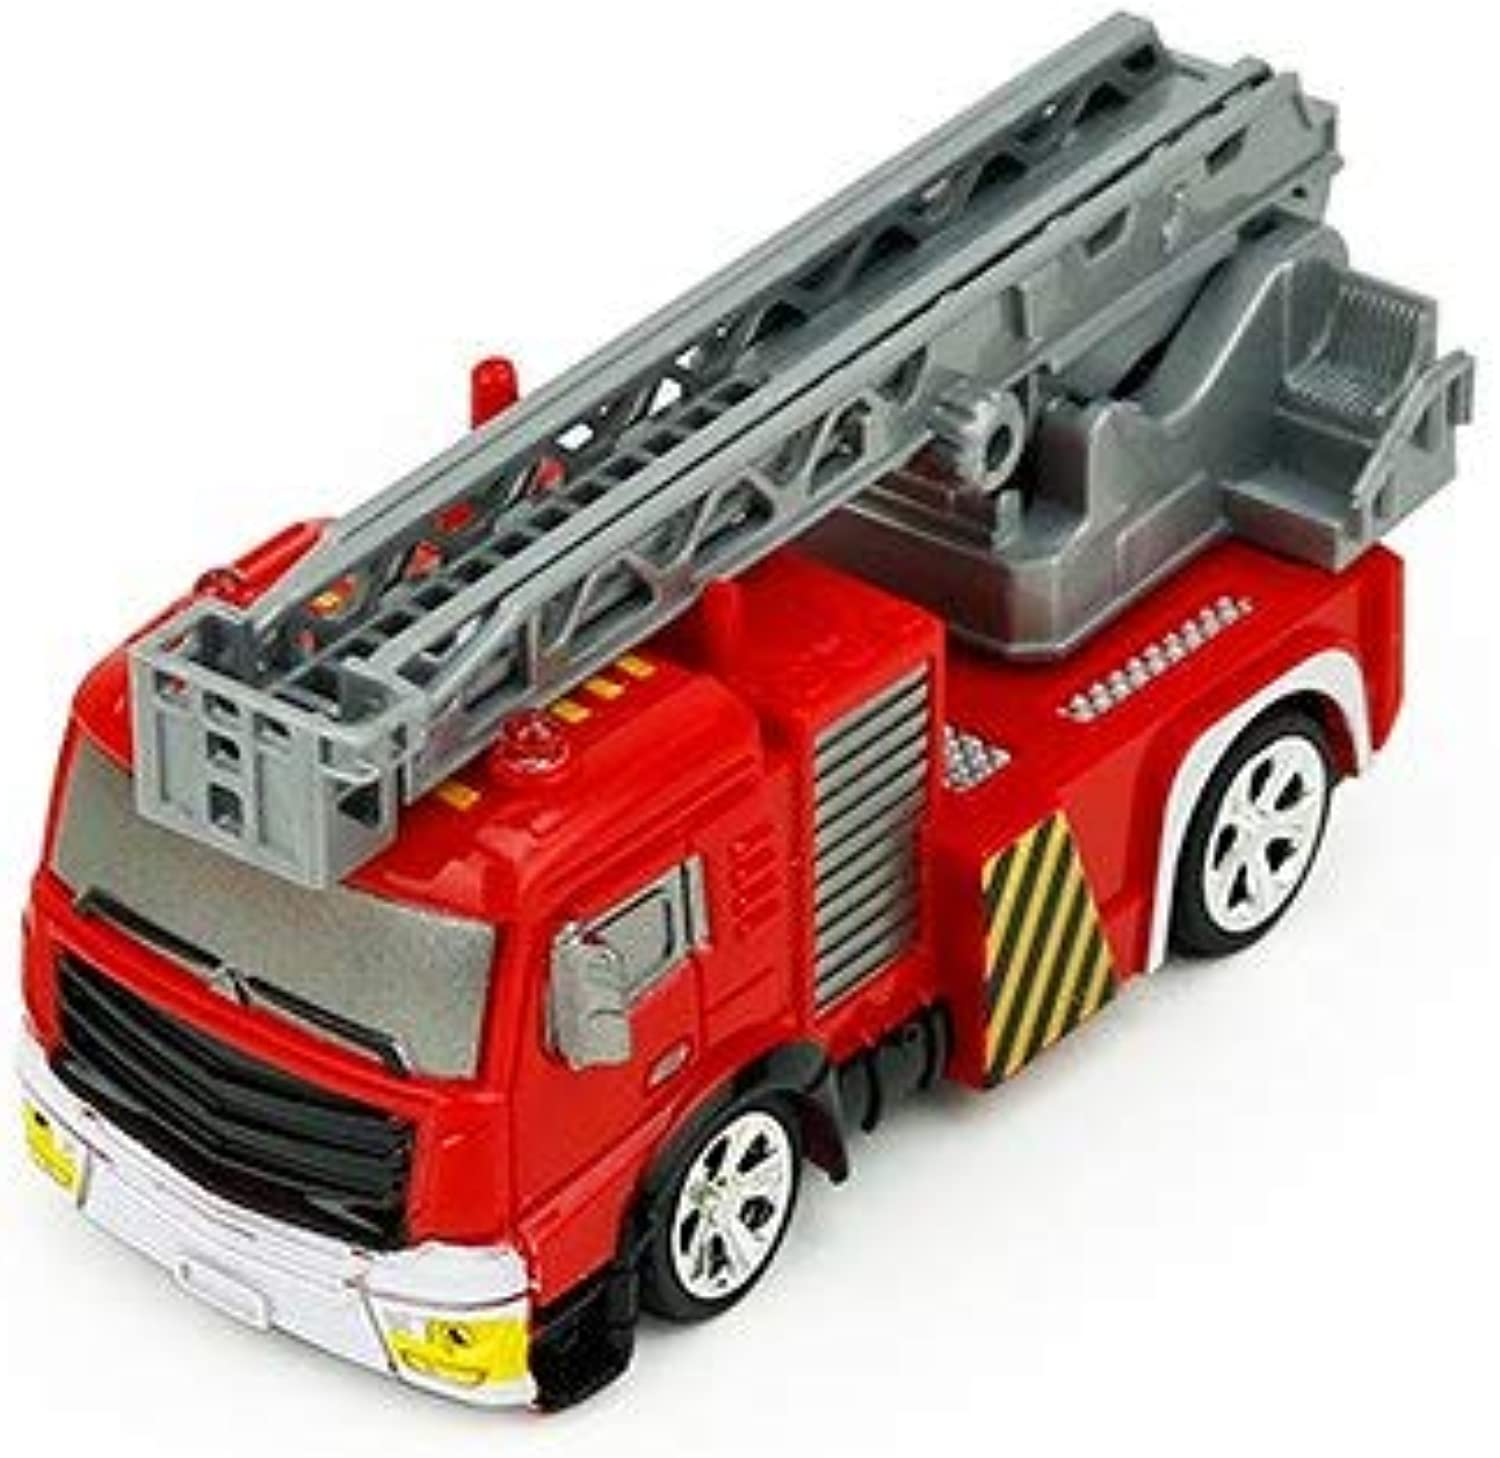 Generic RC Truck 1 58 Fire Truck Engine Remote Control Pumper with LED Lights and Sounds Construction Vehicles for Kids Hobby Toys WaterTank Truck10